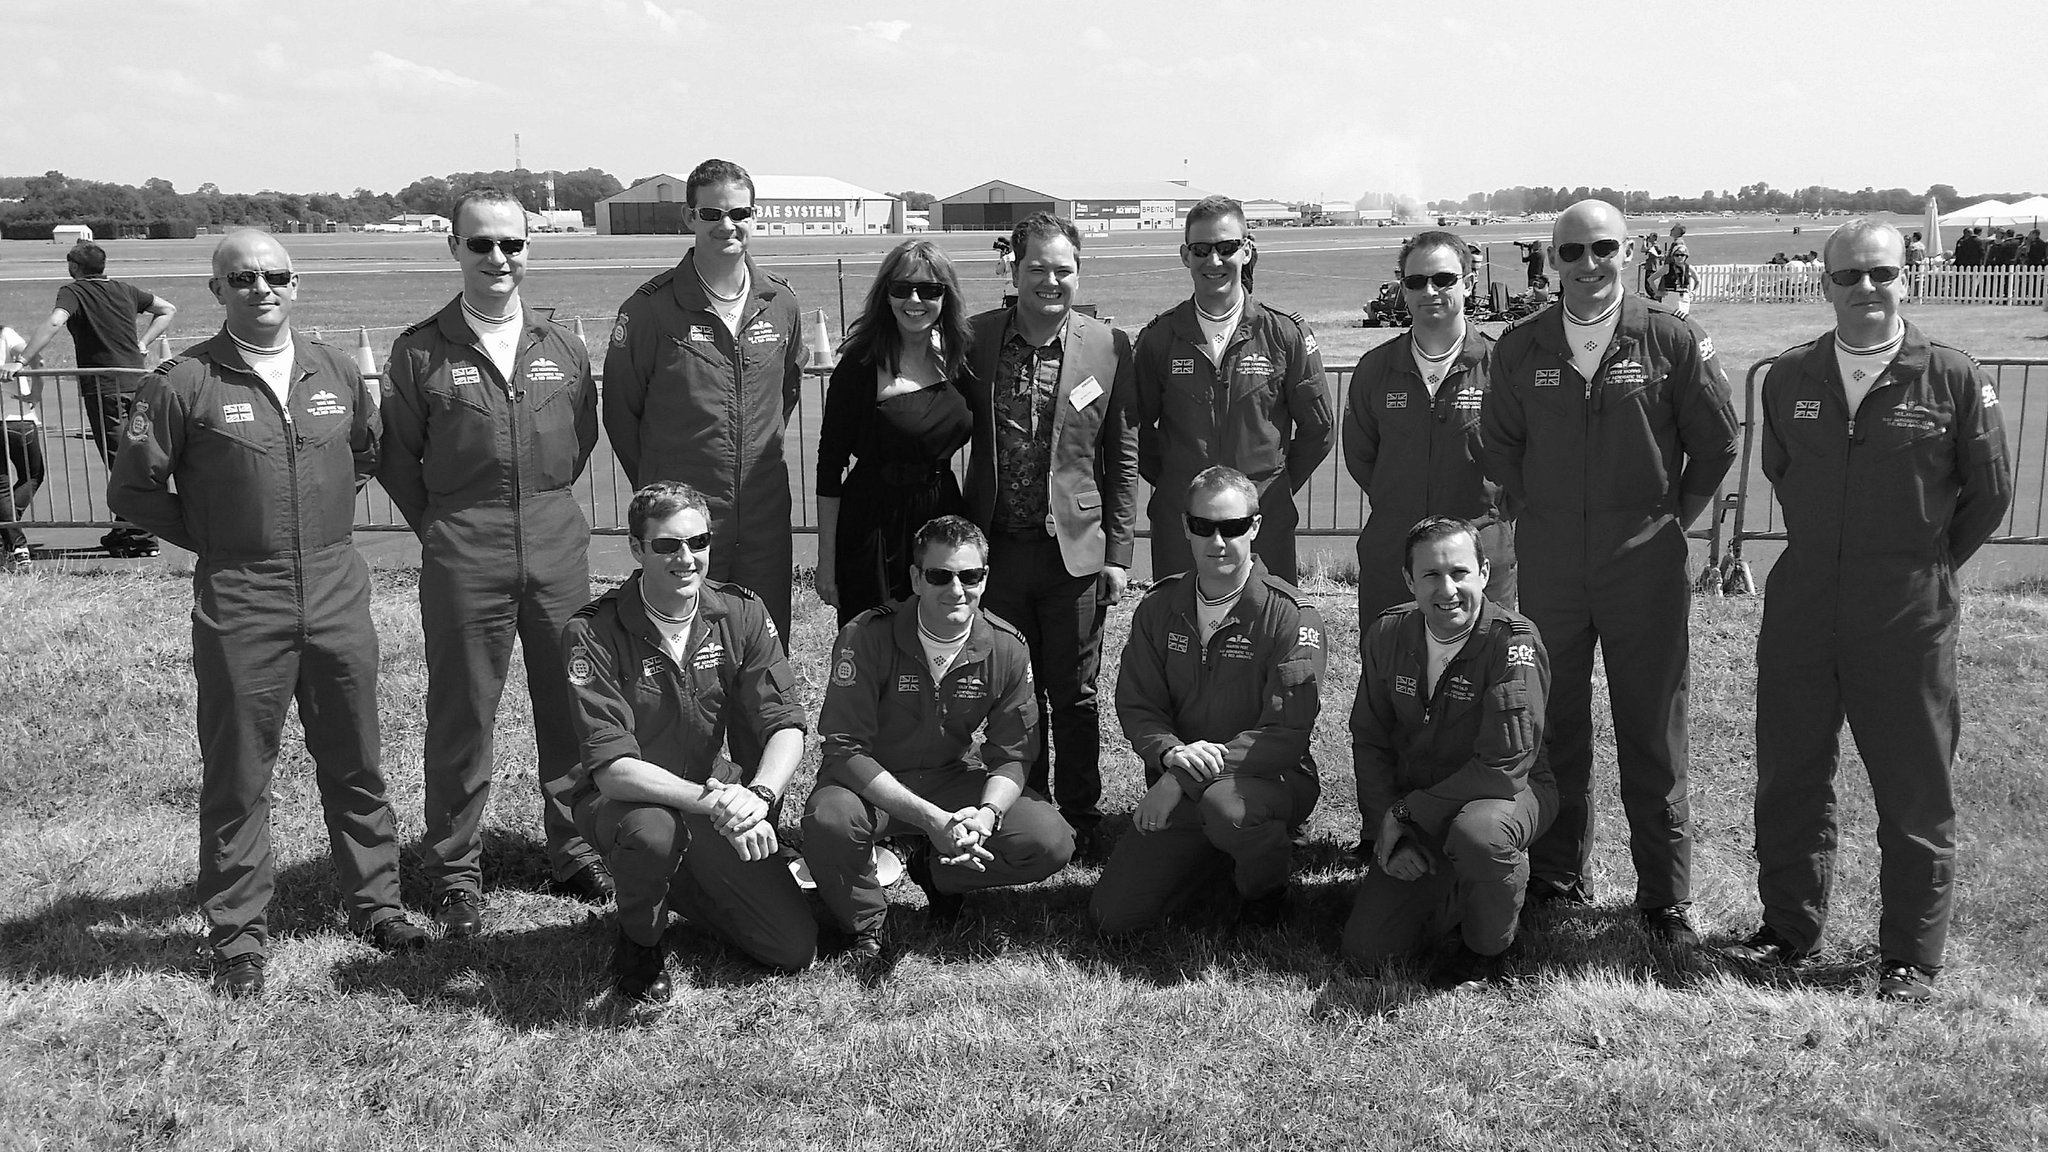 So this is @AlanCarr and yours truly 2 weeks ago with Red Arrows @airtattoo ...but someone took pic in b&w....! http://t.co/13CKtTisV8